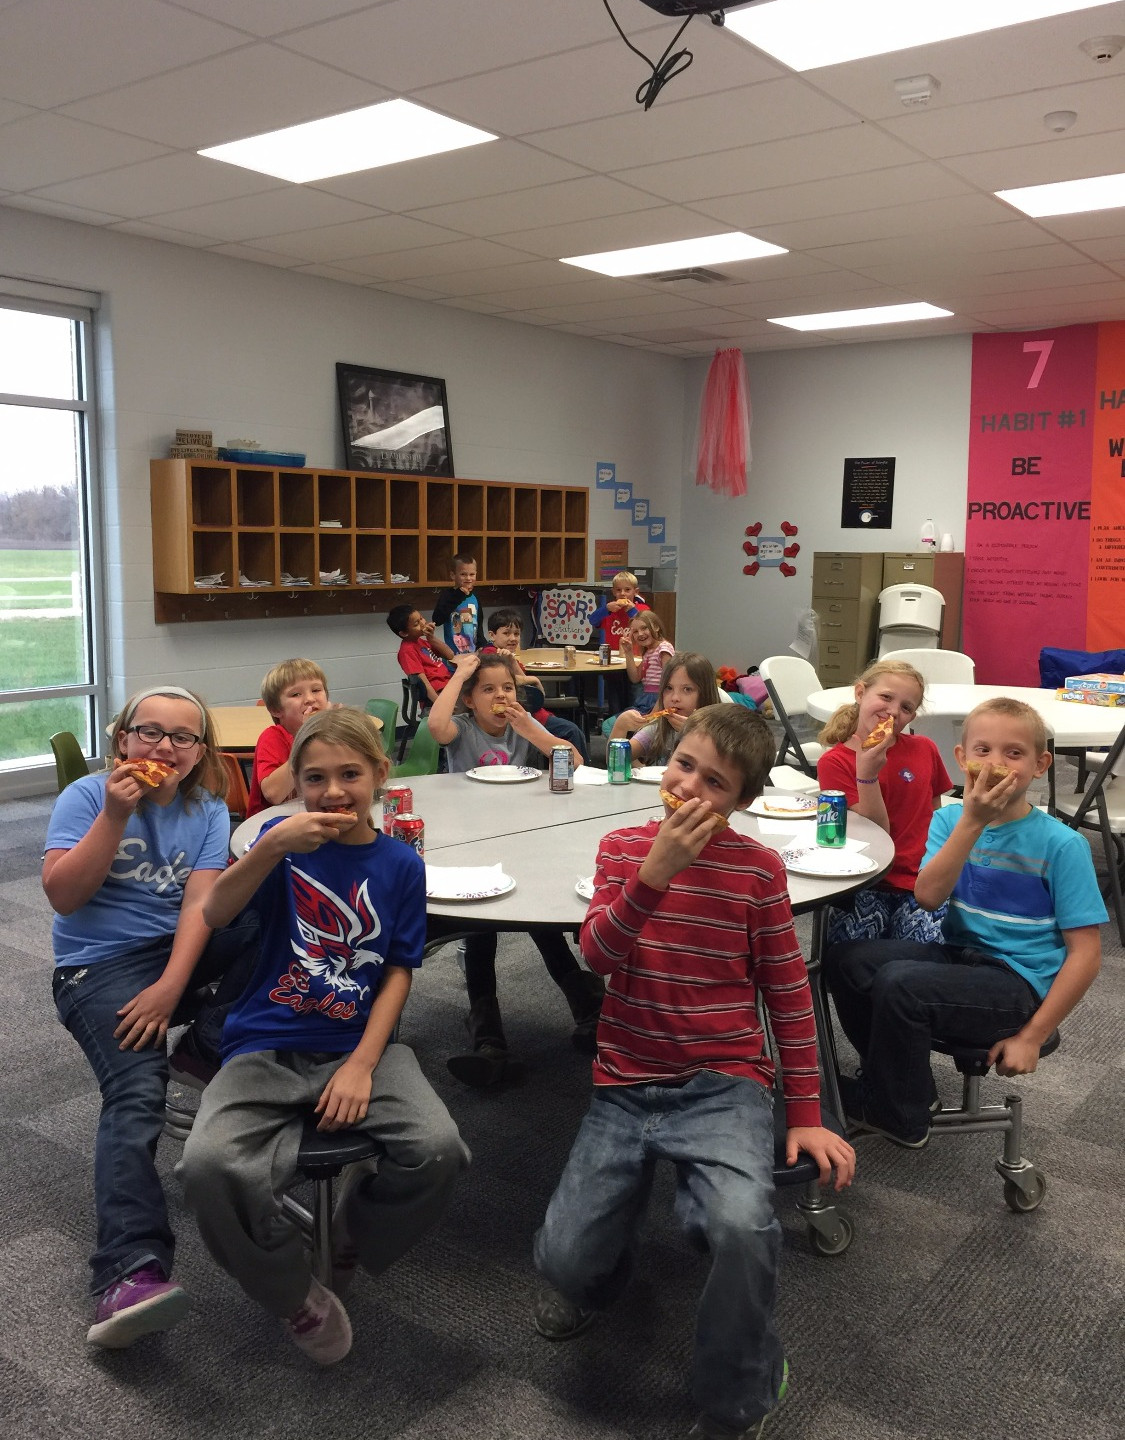 2nd grade pizza party!